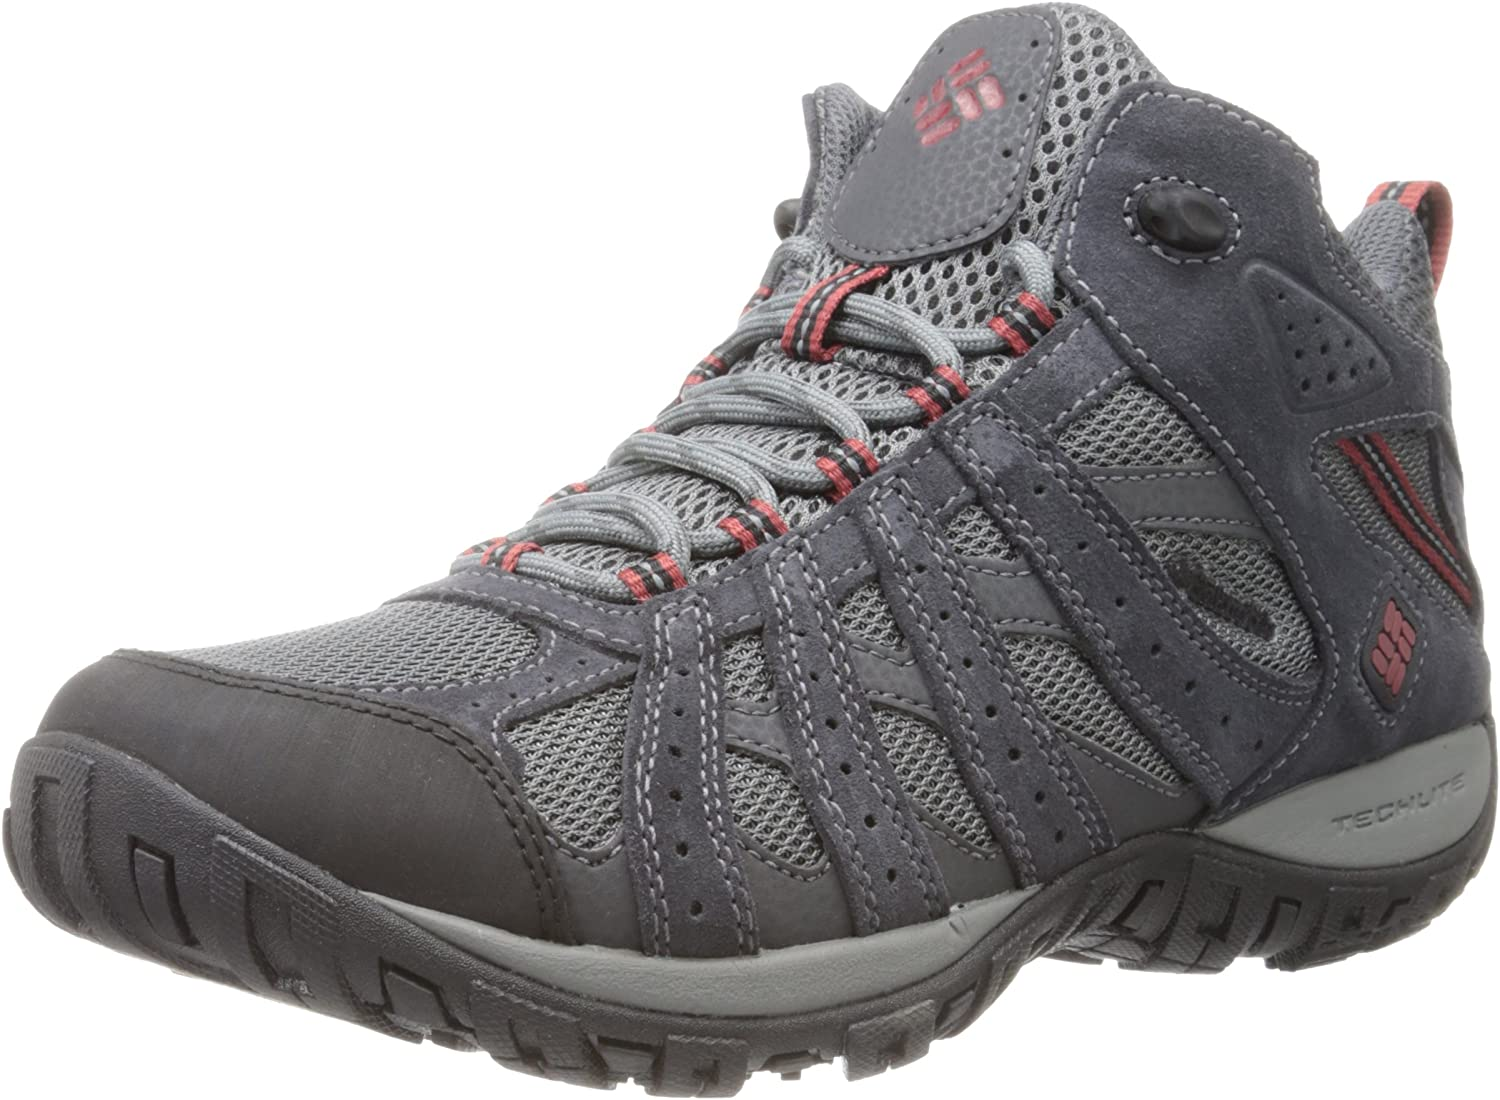 Columbia Men'sREDMOND MID WATERPROOF Hiking Shoe